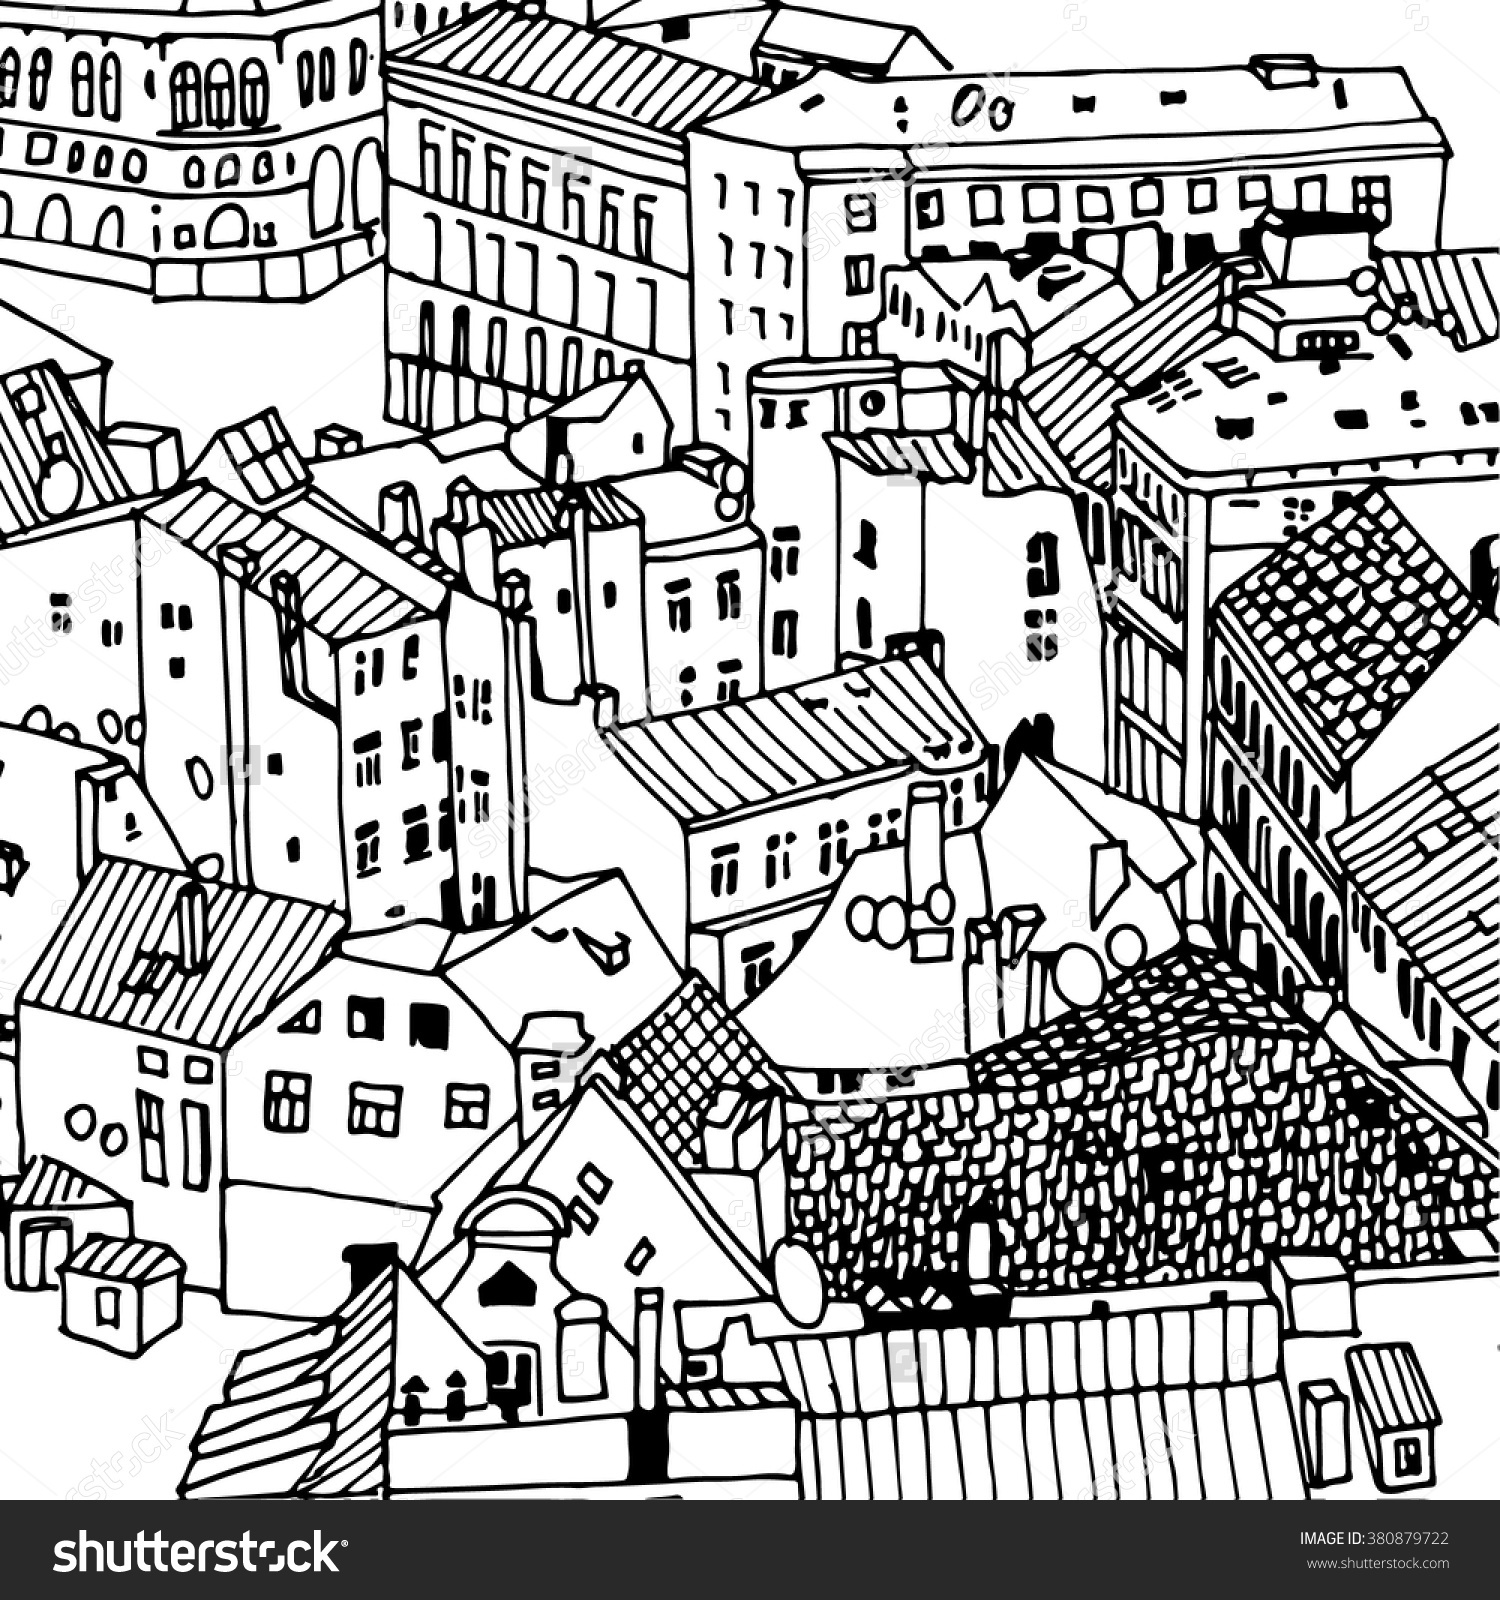 1500x1600 Sketch Drawing Urban Landscape Cityscape Rooftops And The Save To